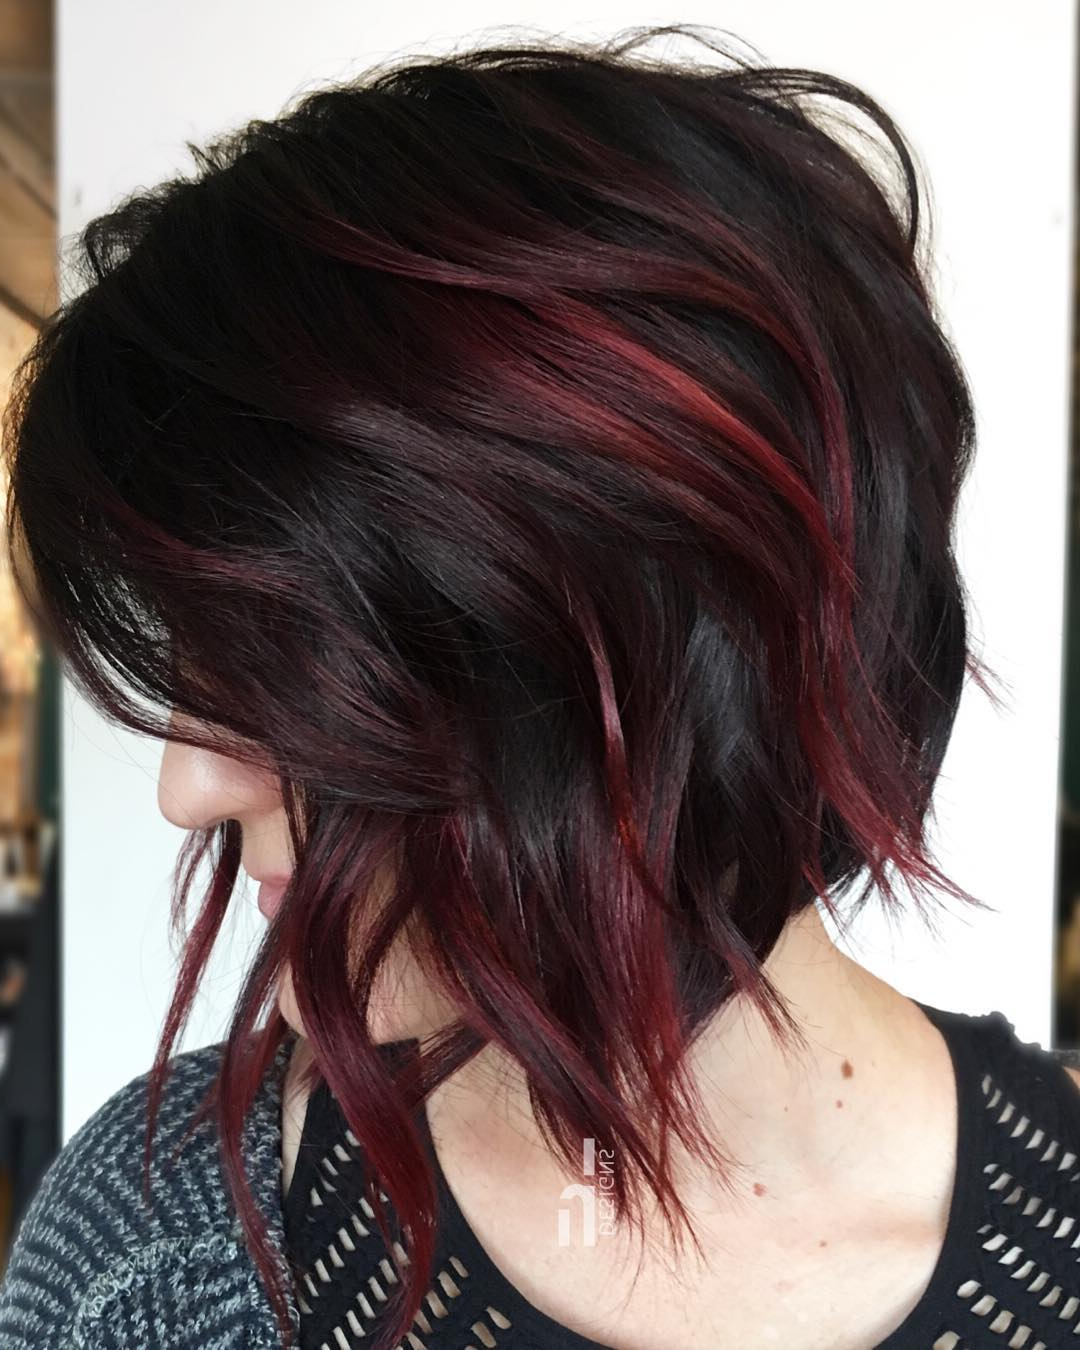 10 Stylish Medium Bob Haircuts For Women – Easy Care Chic Bob Hair 2019 In Trendy Burgundy Bob Hairstyles With Long Layers (View 1 of 20)